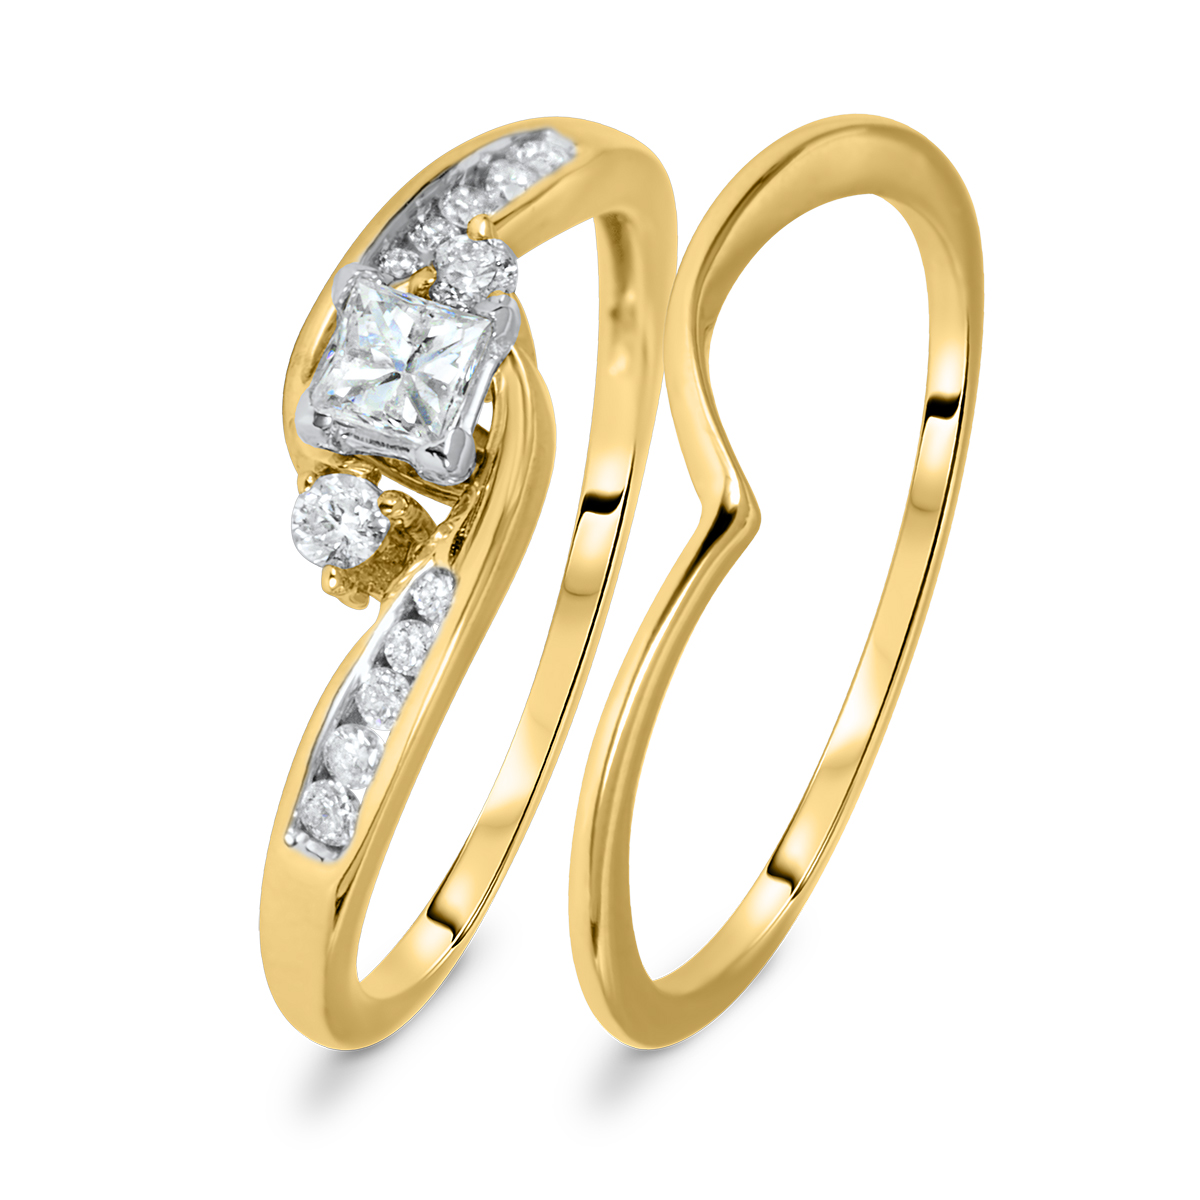 1/2 CT. T.W. Princess, Round Cut Diamond Ladies Bridal Ring Set 10K Yellow Gold